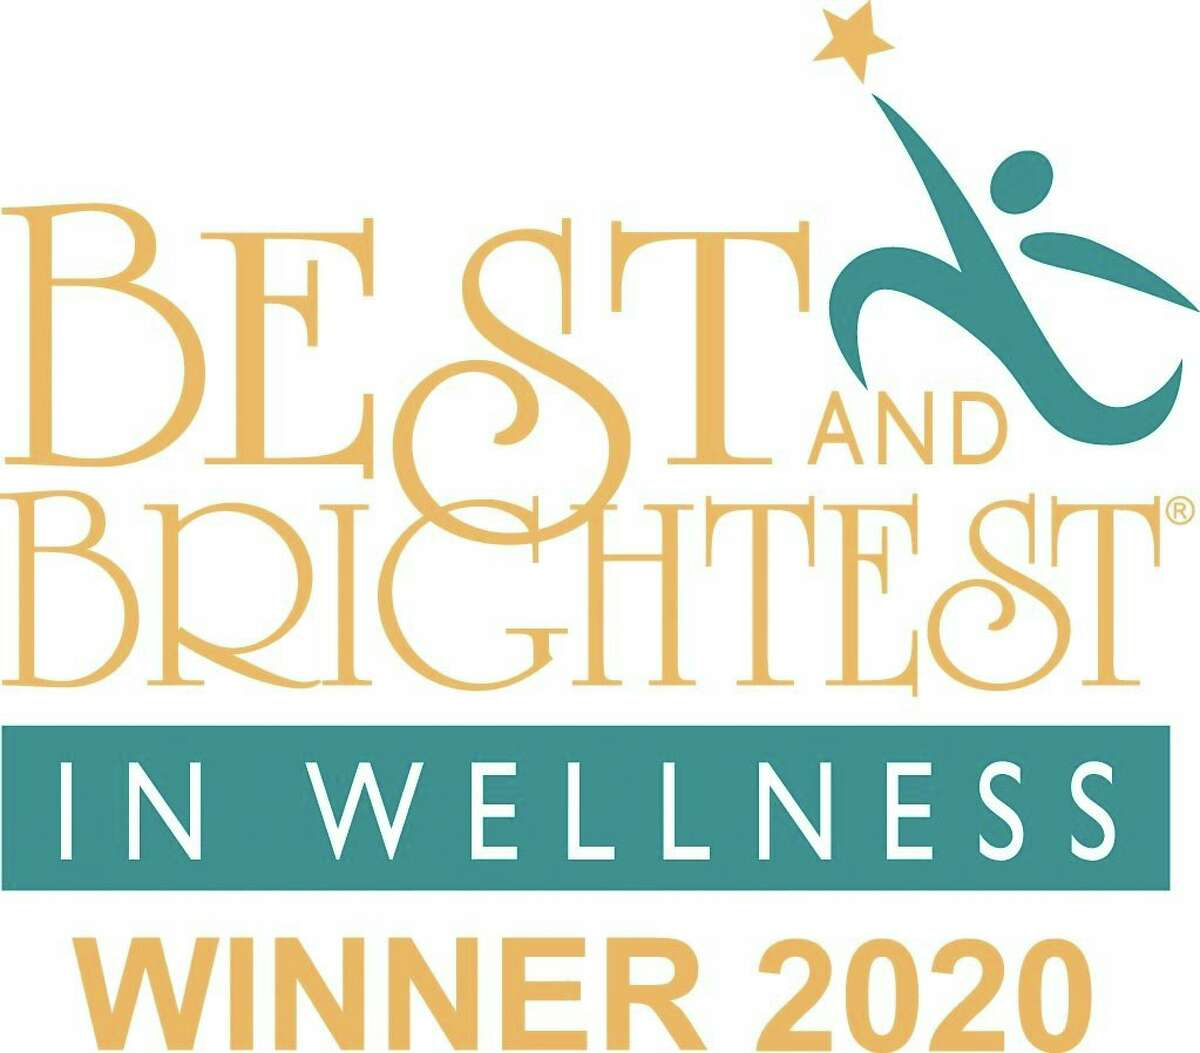 For the seventh consecutive year, Yeo & Yeo has been selected as one of Michigan's Best and Brightest in Wellness. (Image provided)